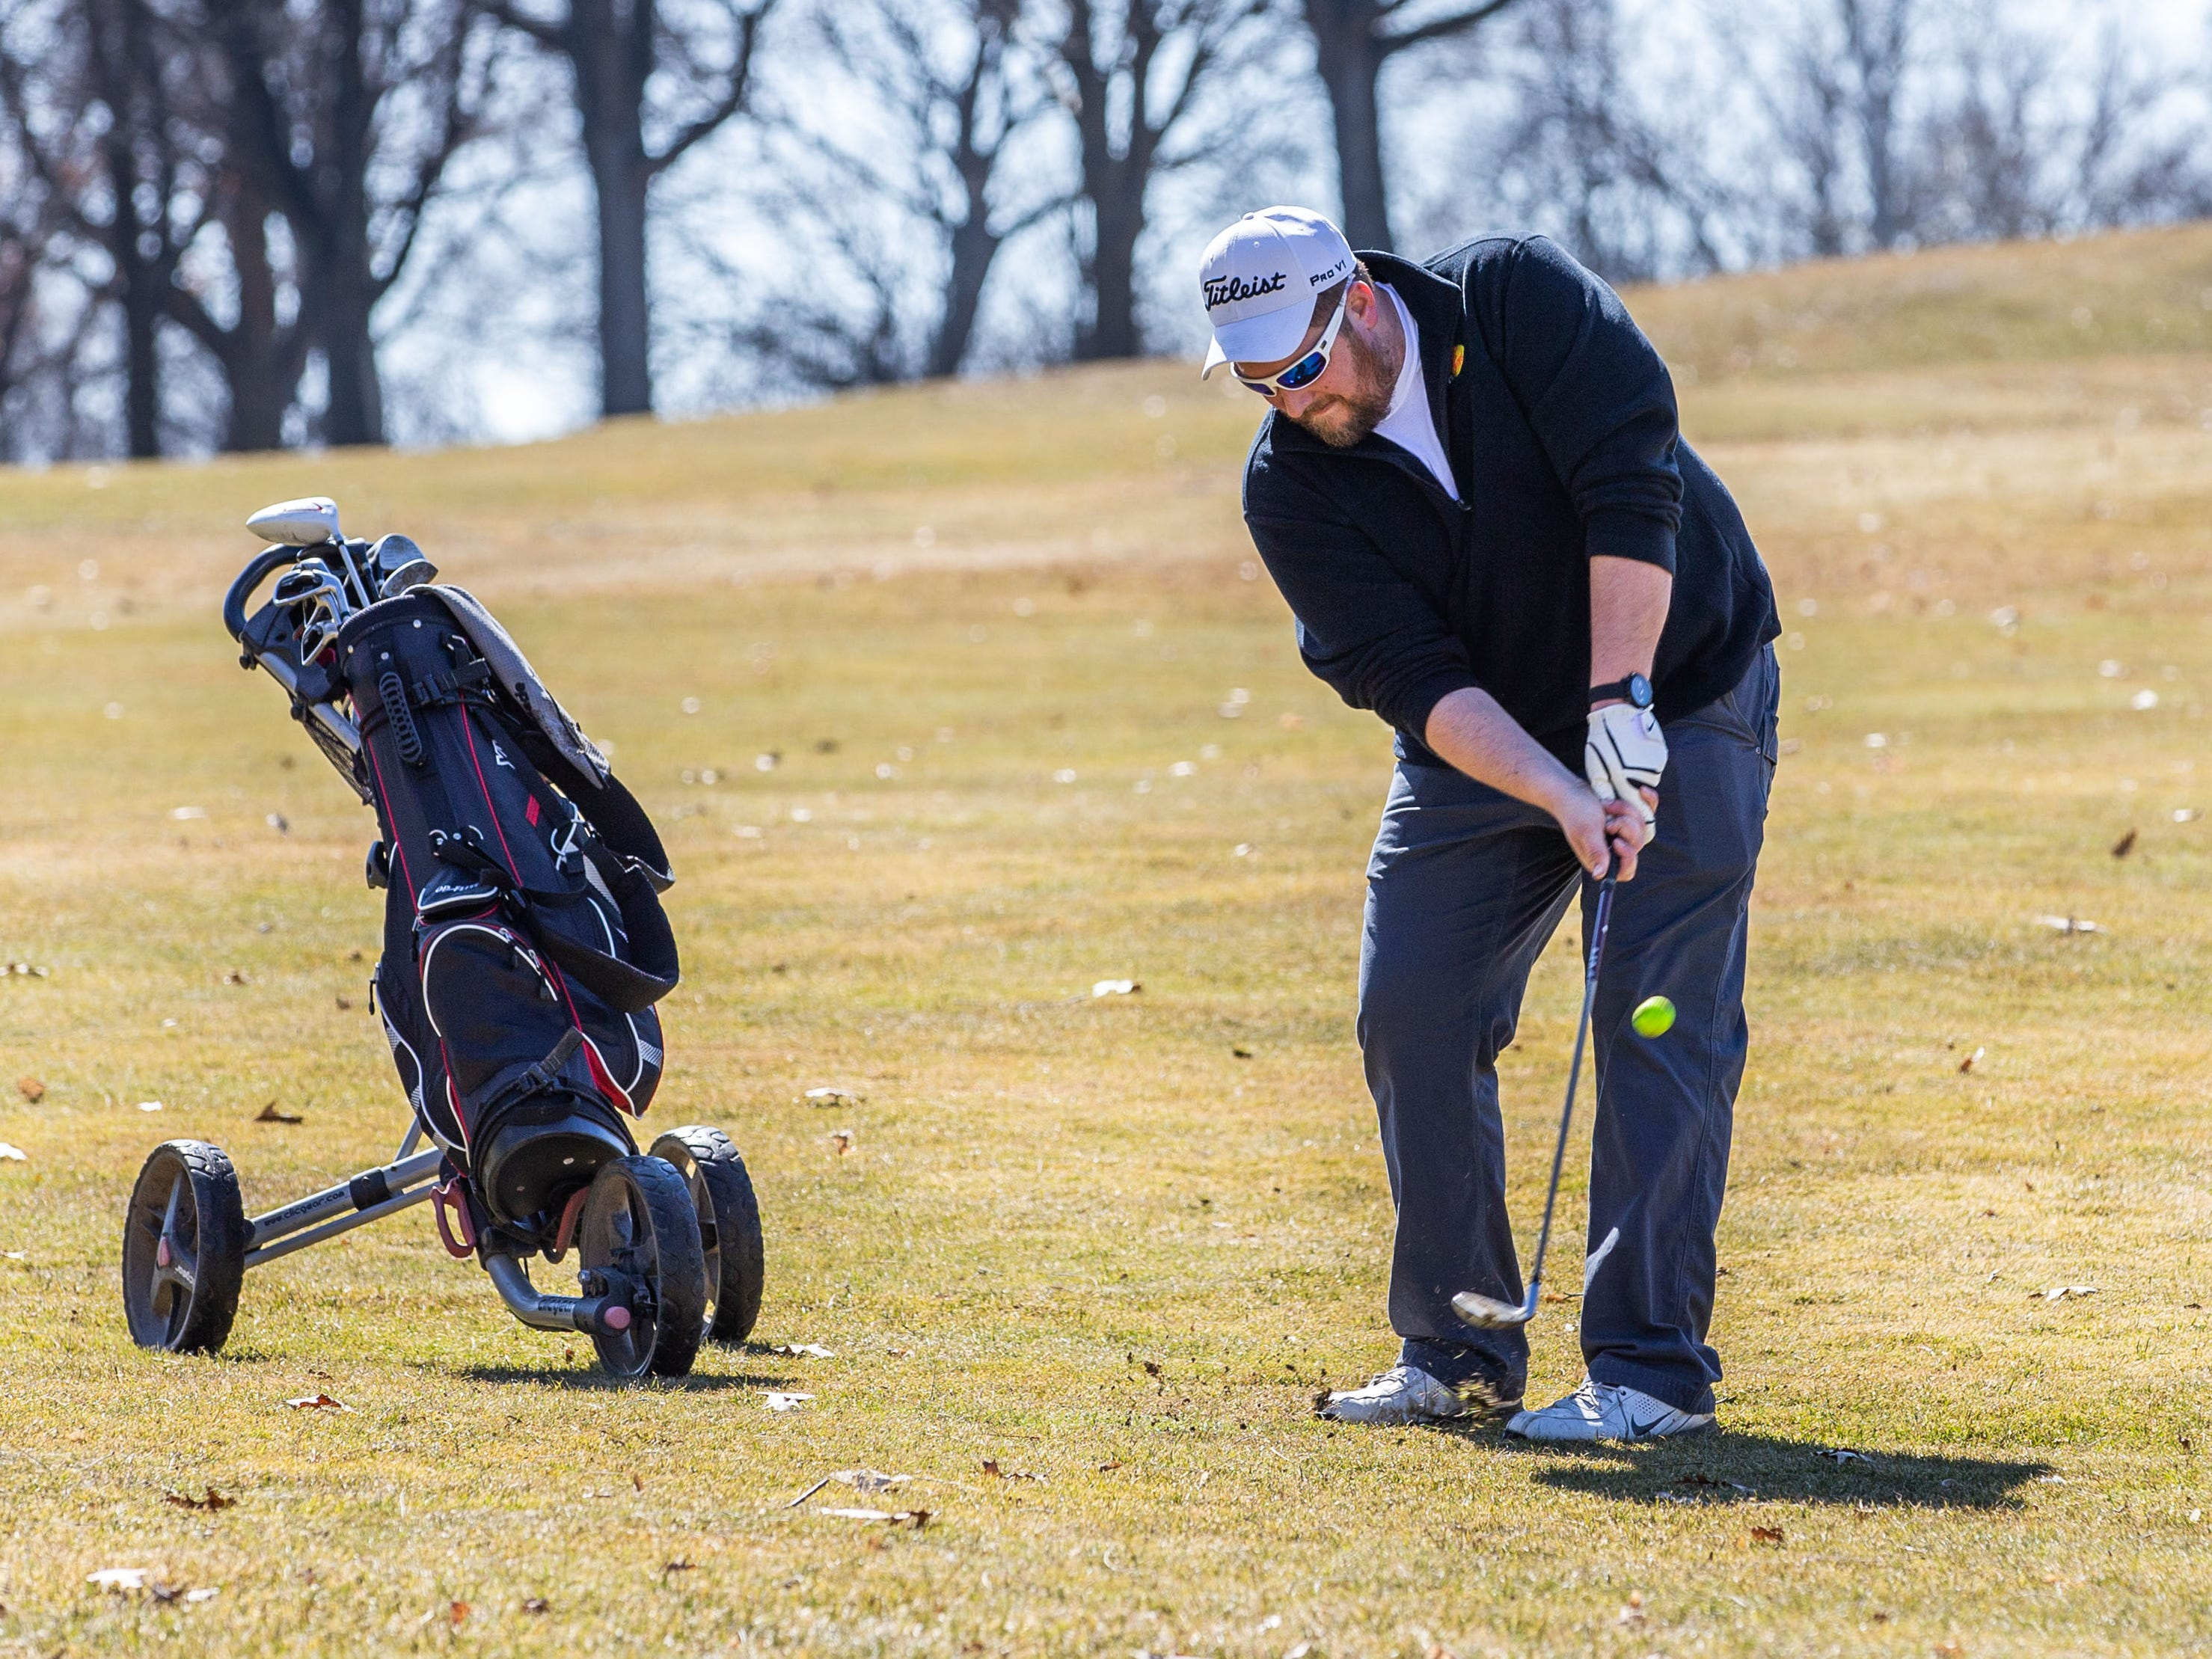 Todd Gillman of New Berlin chips onto a green at Greenfield Park Golf Course on Saturday, March 23, 2019. Warm sunny weather lured many enthusiasts outside to enjoy the game.